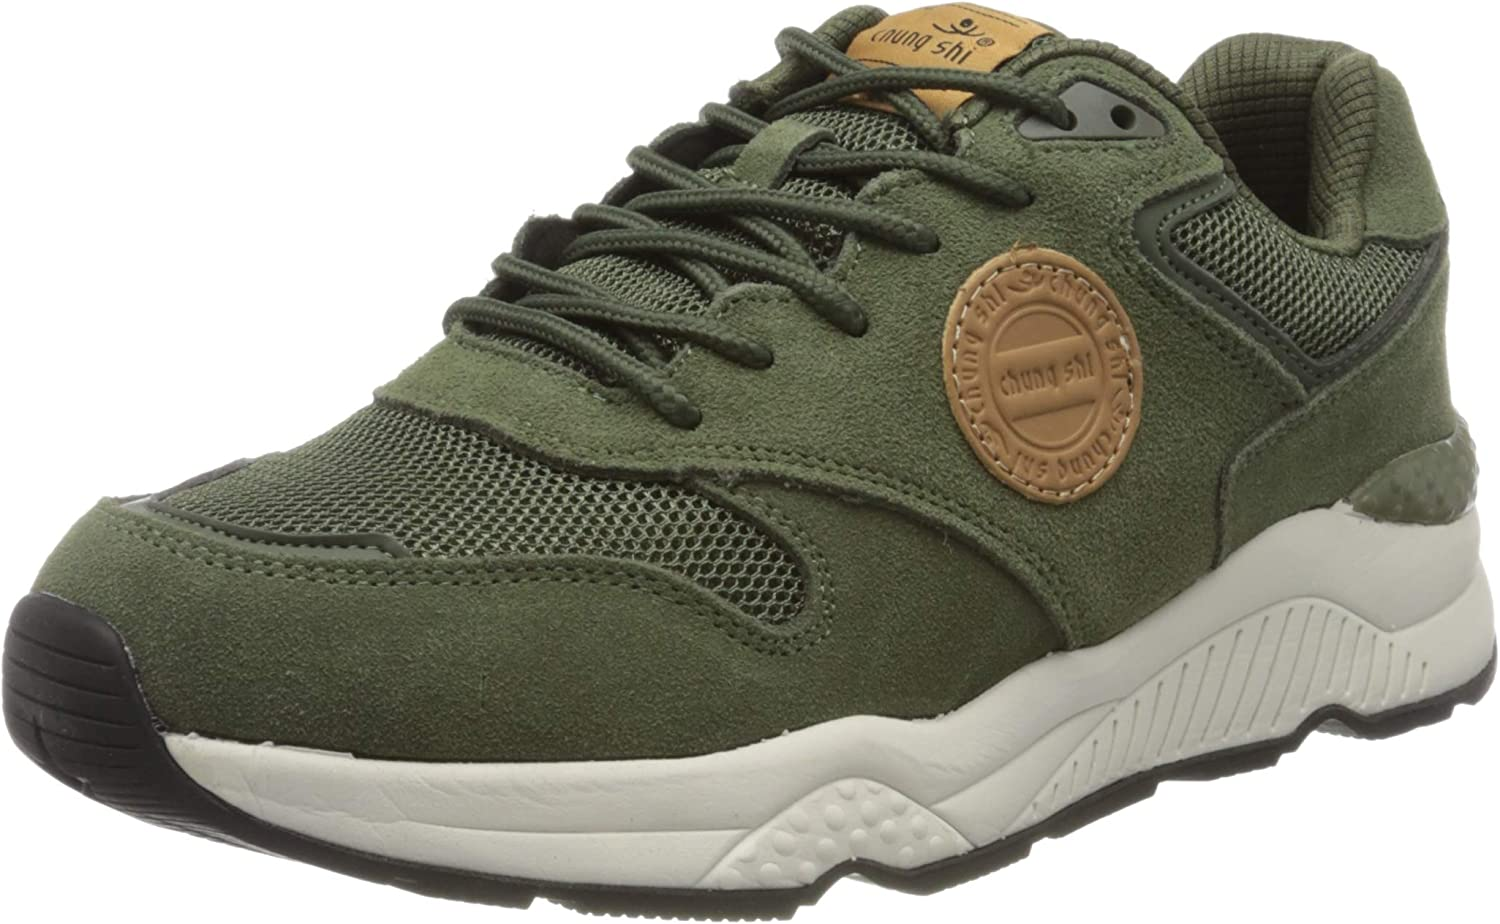 55% OFF Chung -Shi Women's Duxfree Shoes Vancouver Low Lace-up Purchase